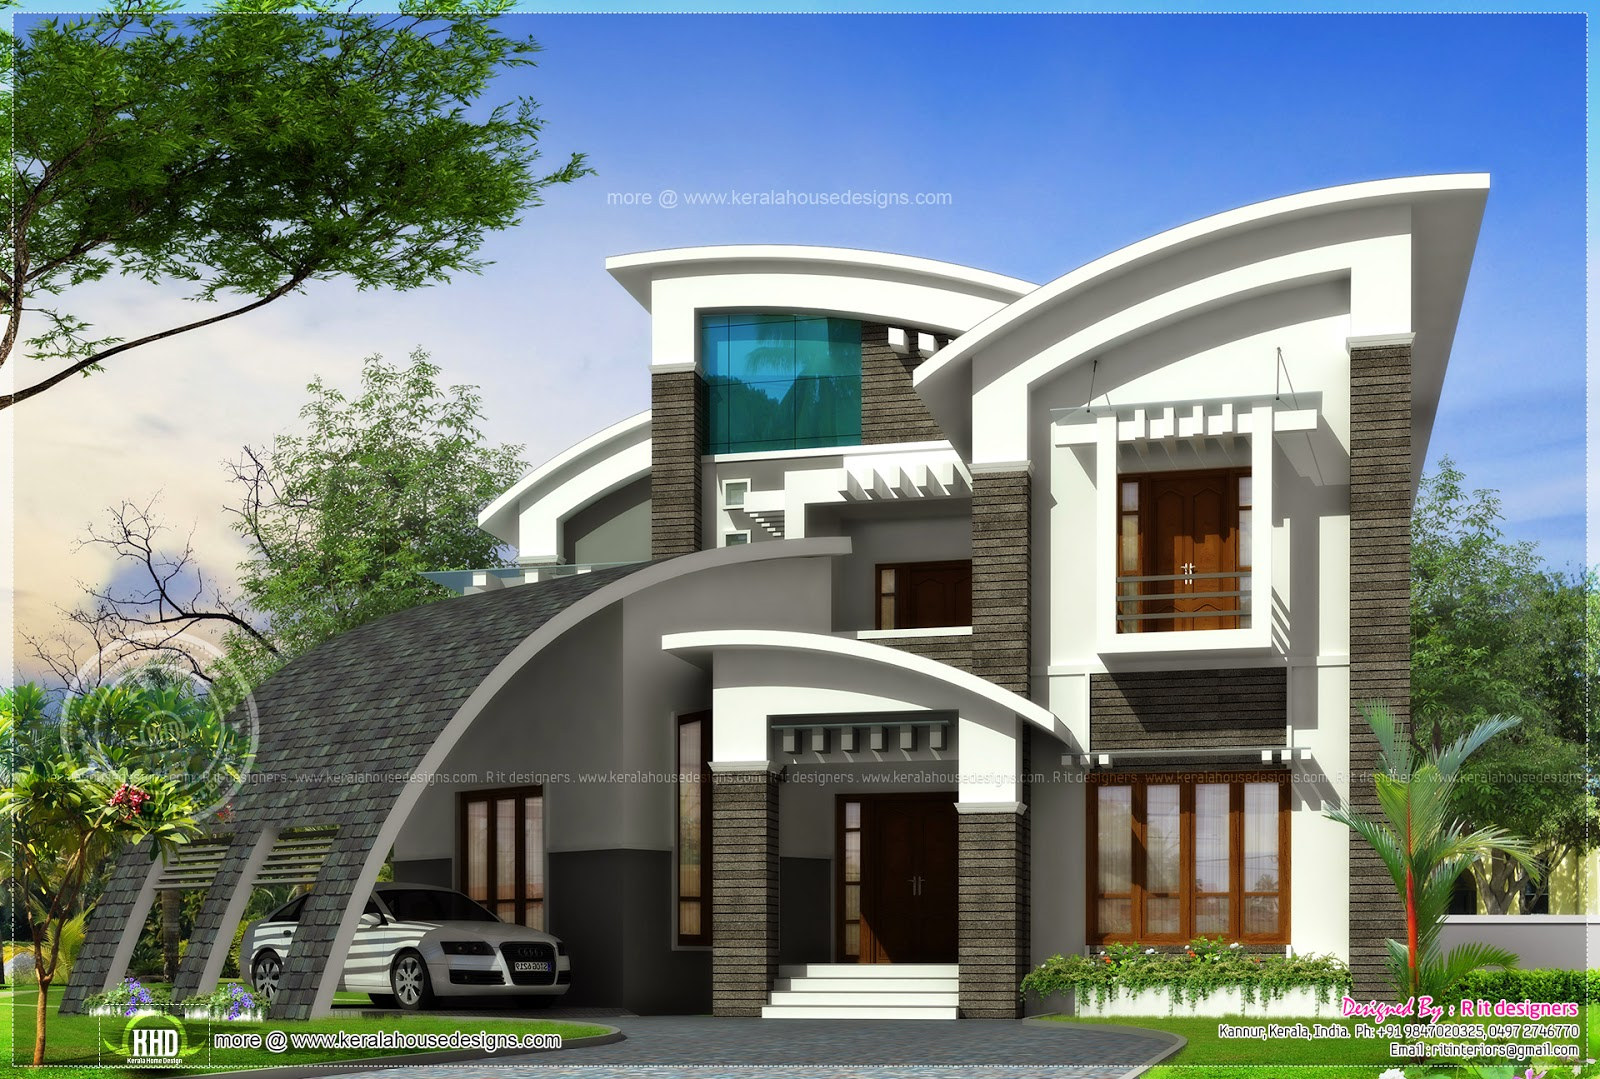 Super luxury ultra modern house design kerala home for Modern luxury house plans and designs